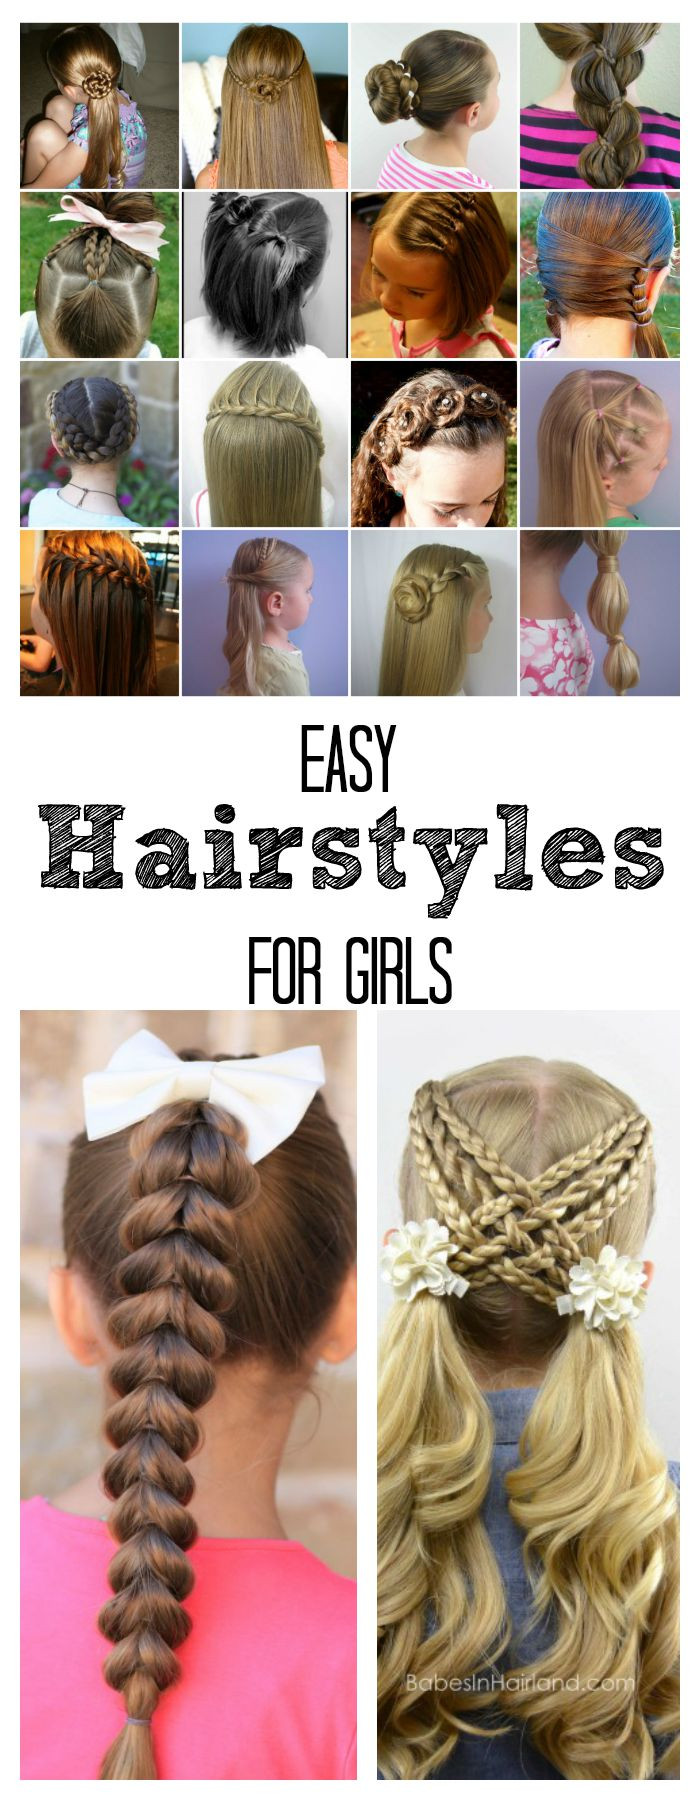 Easy Girls Hairstyles  Easy Hairstyles for Girls The Idea Room